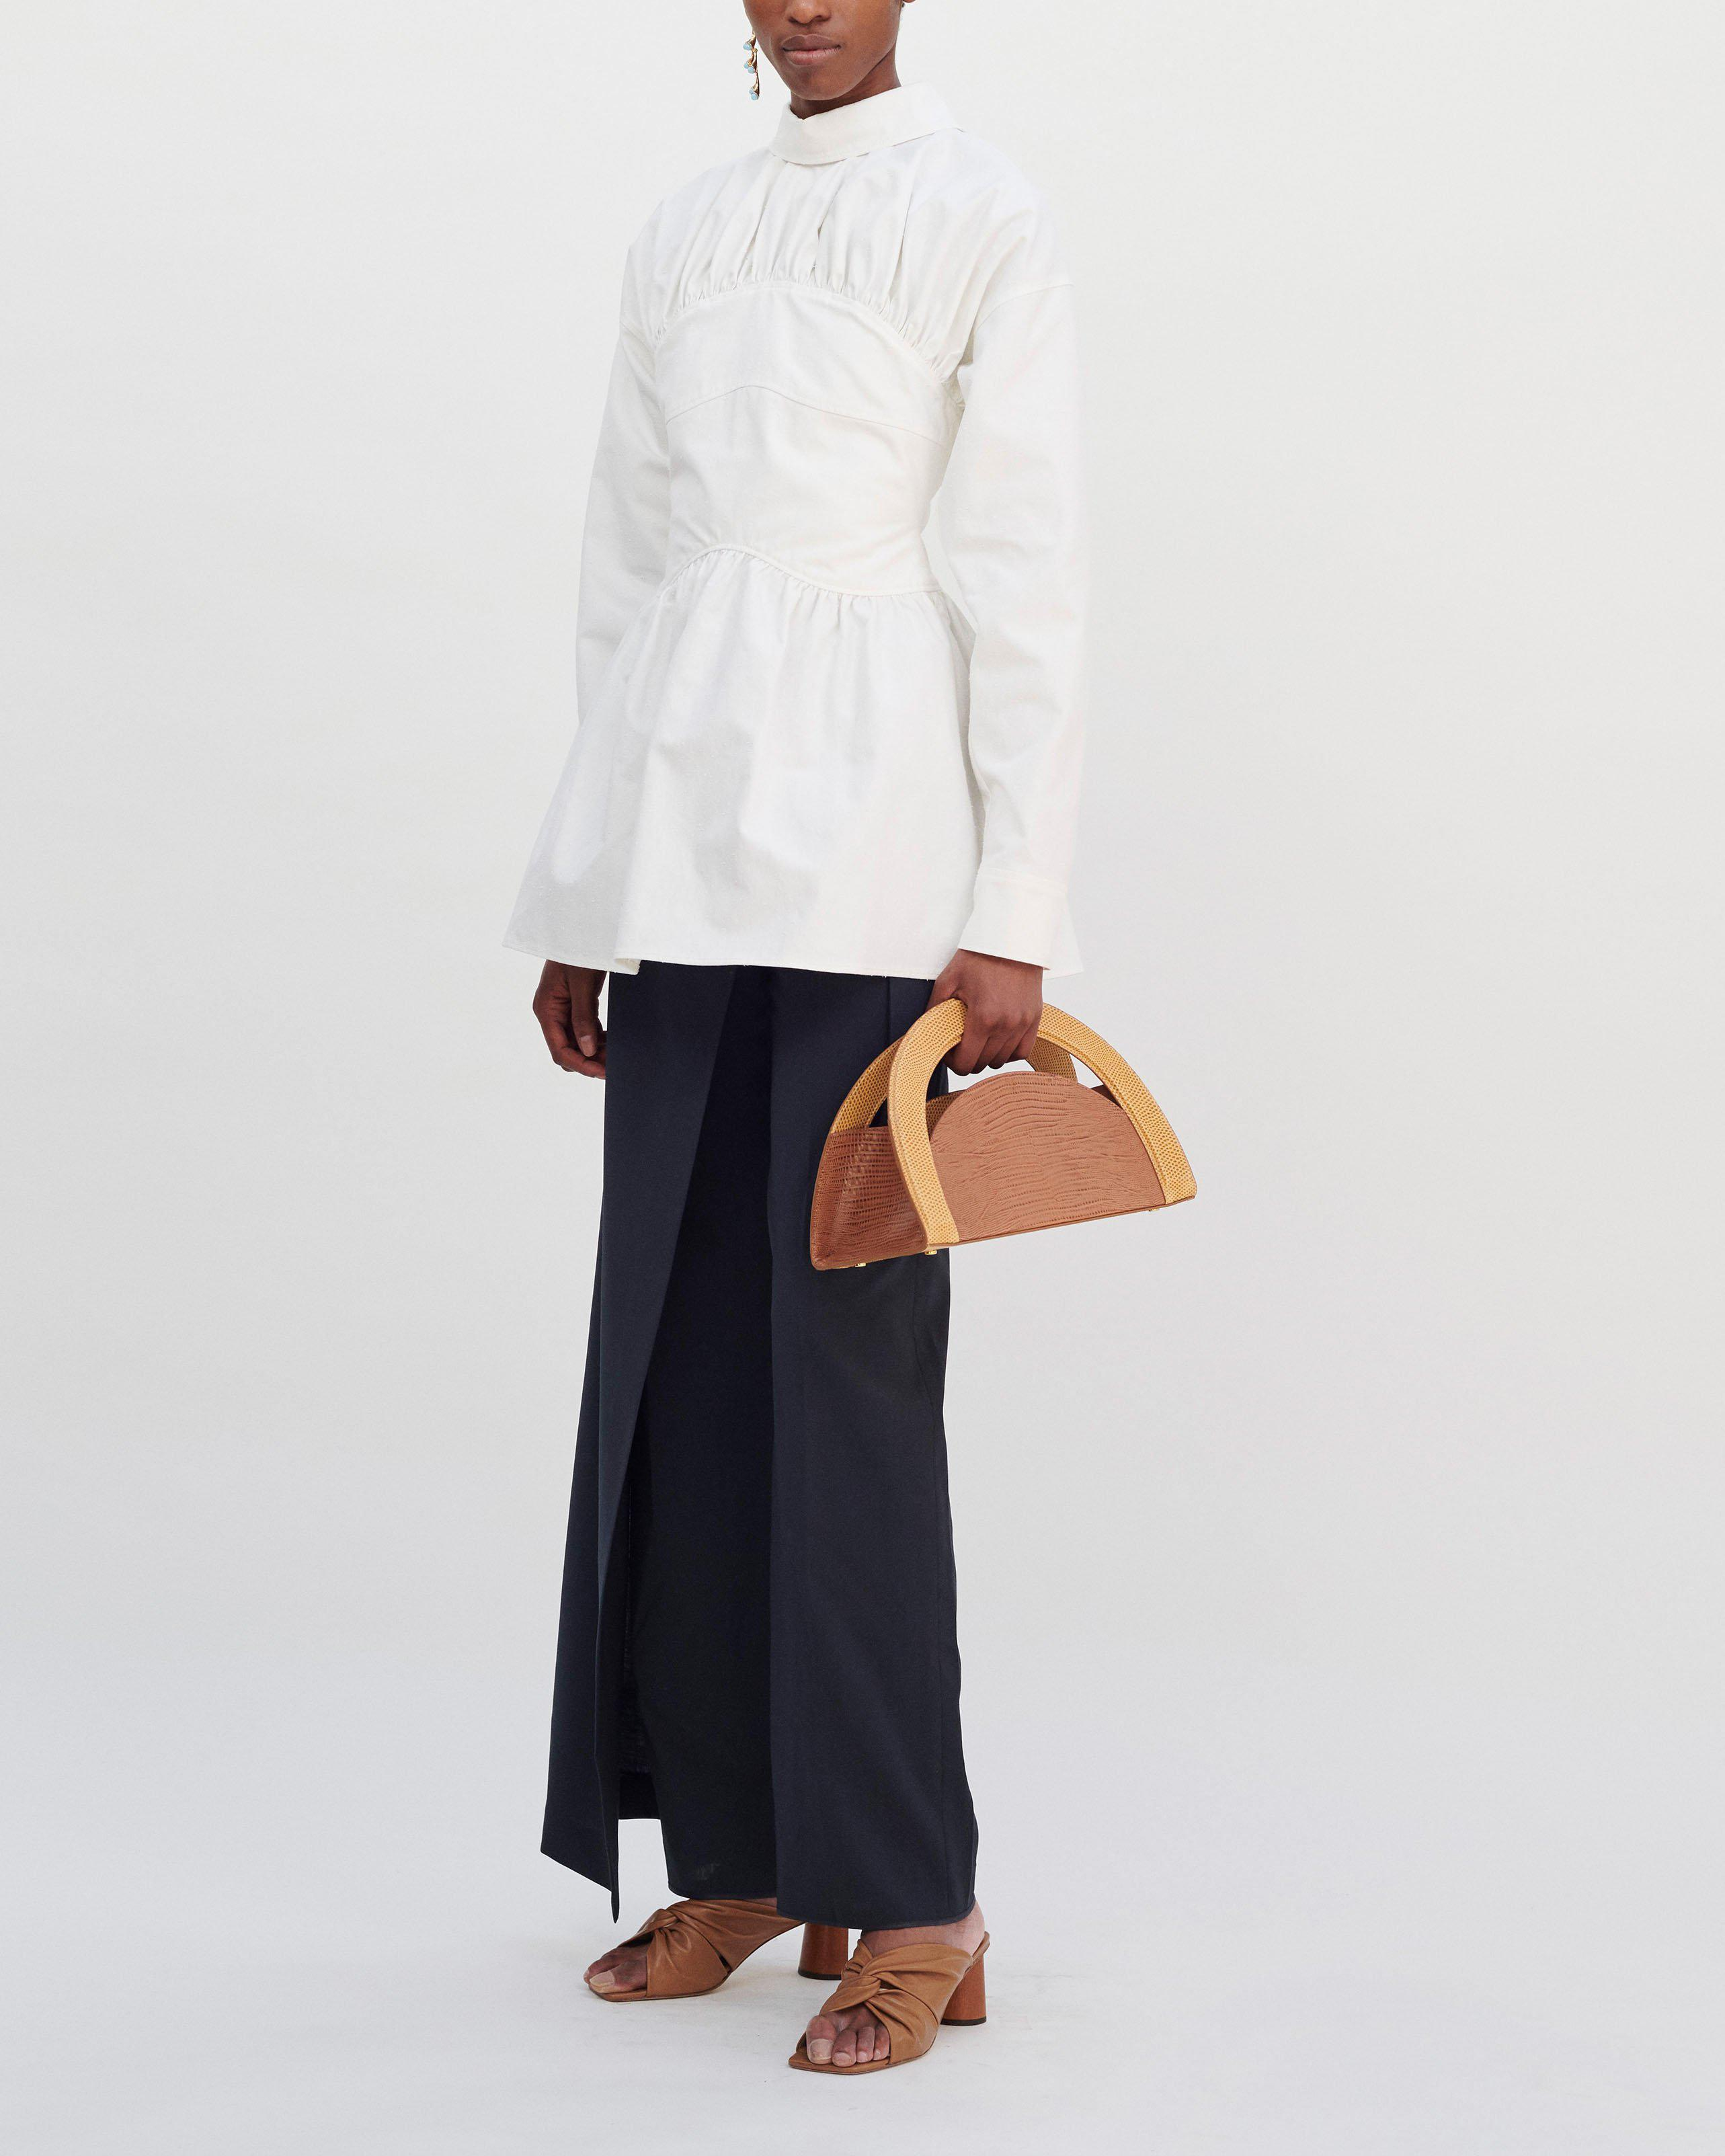 Vera Blouse Japanese Cotton Blend Off-White - SPECIAL PRICE